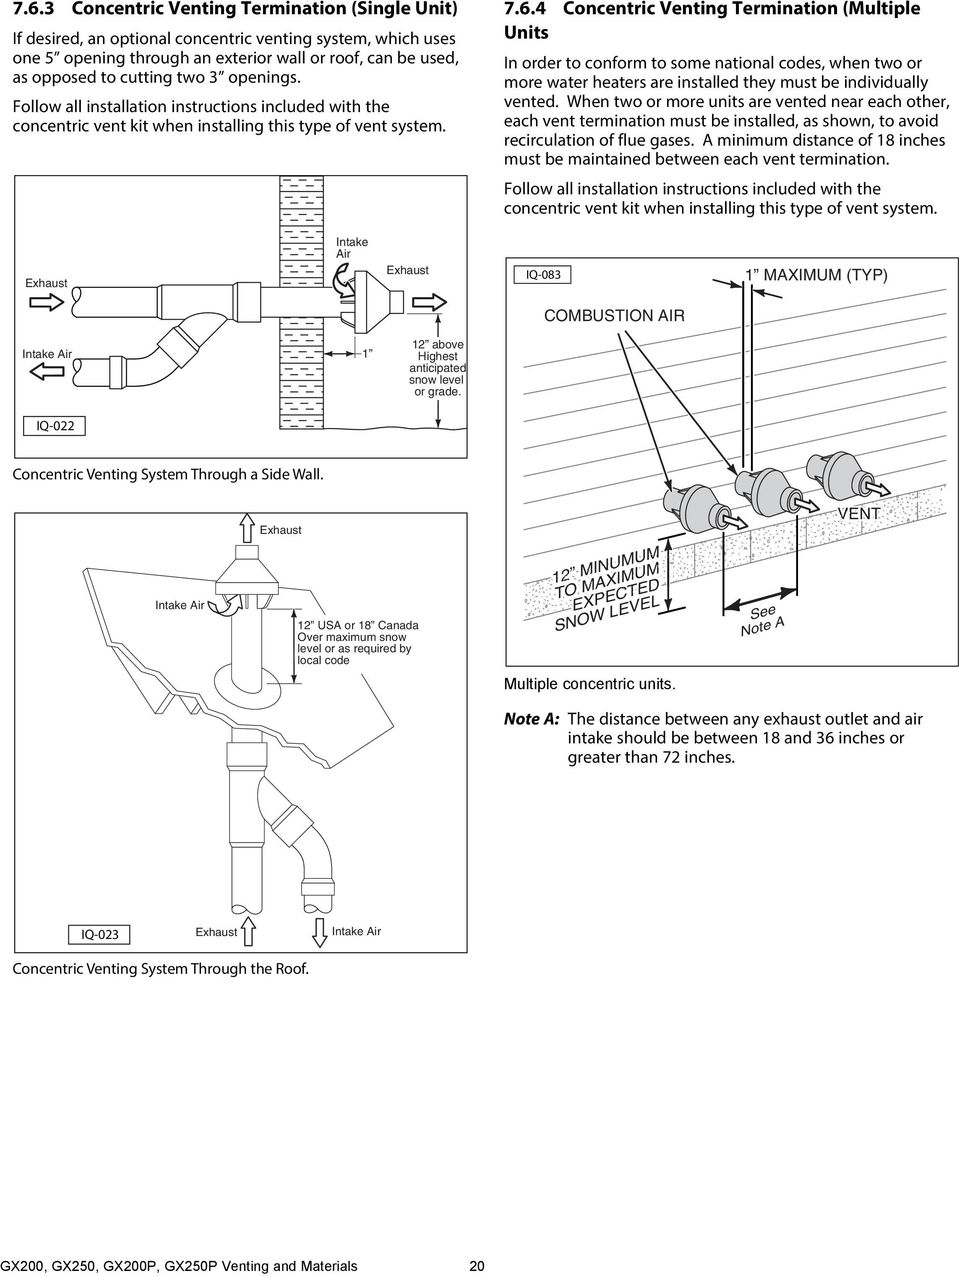 Operation And Installation Manual Model Gx200 Gx250 Gx200p Gx250p Lionel 022 Switch Wiring Diagram 4 Concentric Venting Termination Multiple Units In Order To Conform Some National Codes